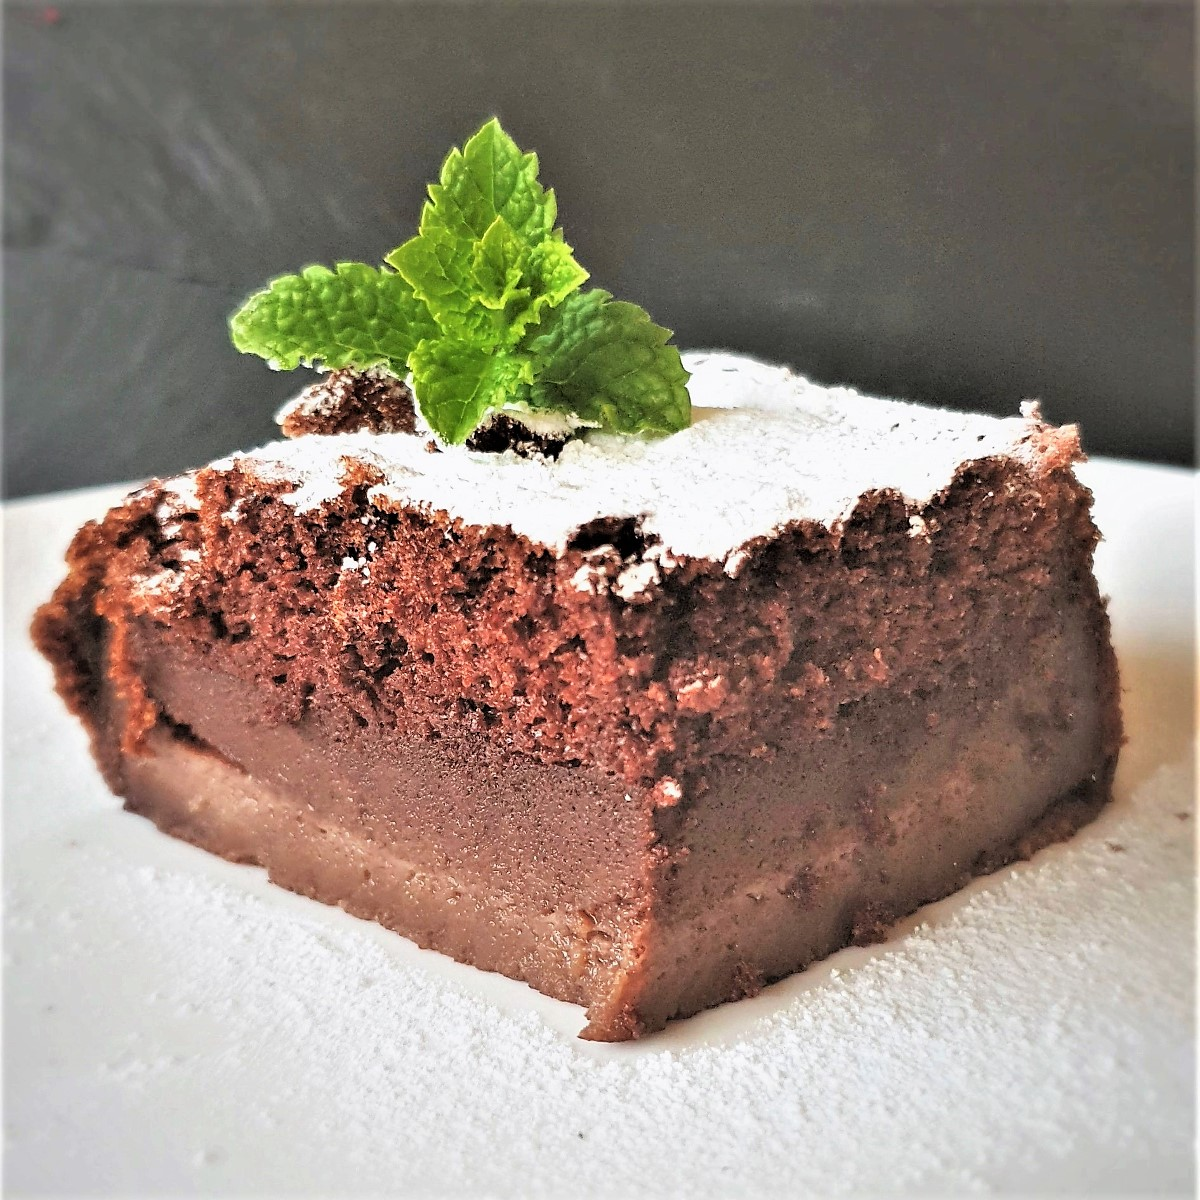 A slice of chocolate magic cake on a plate, clearly showing the three distinct layers.